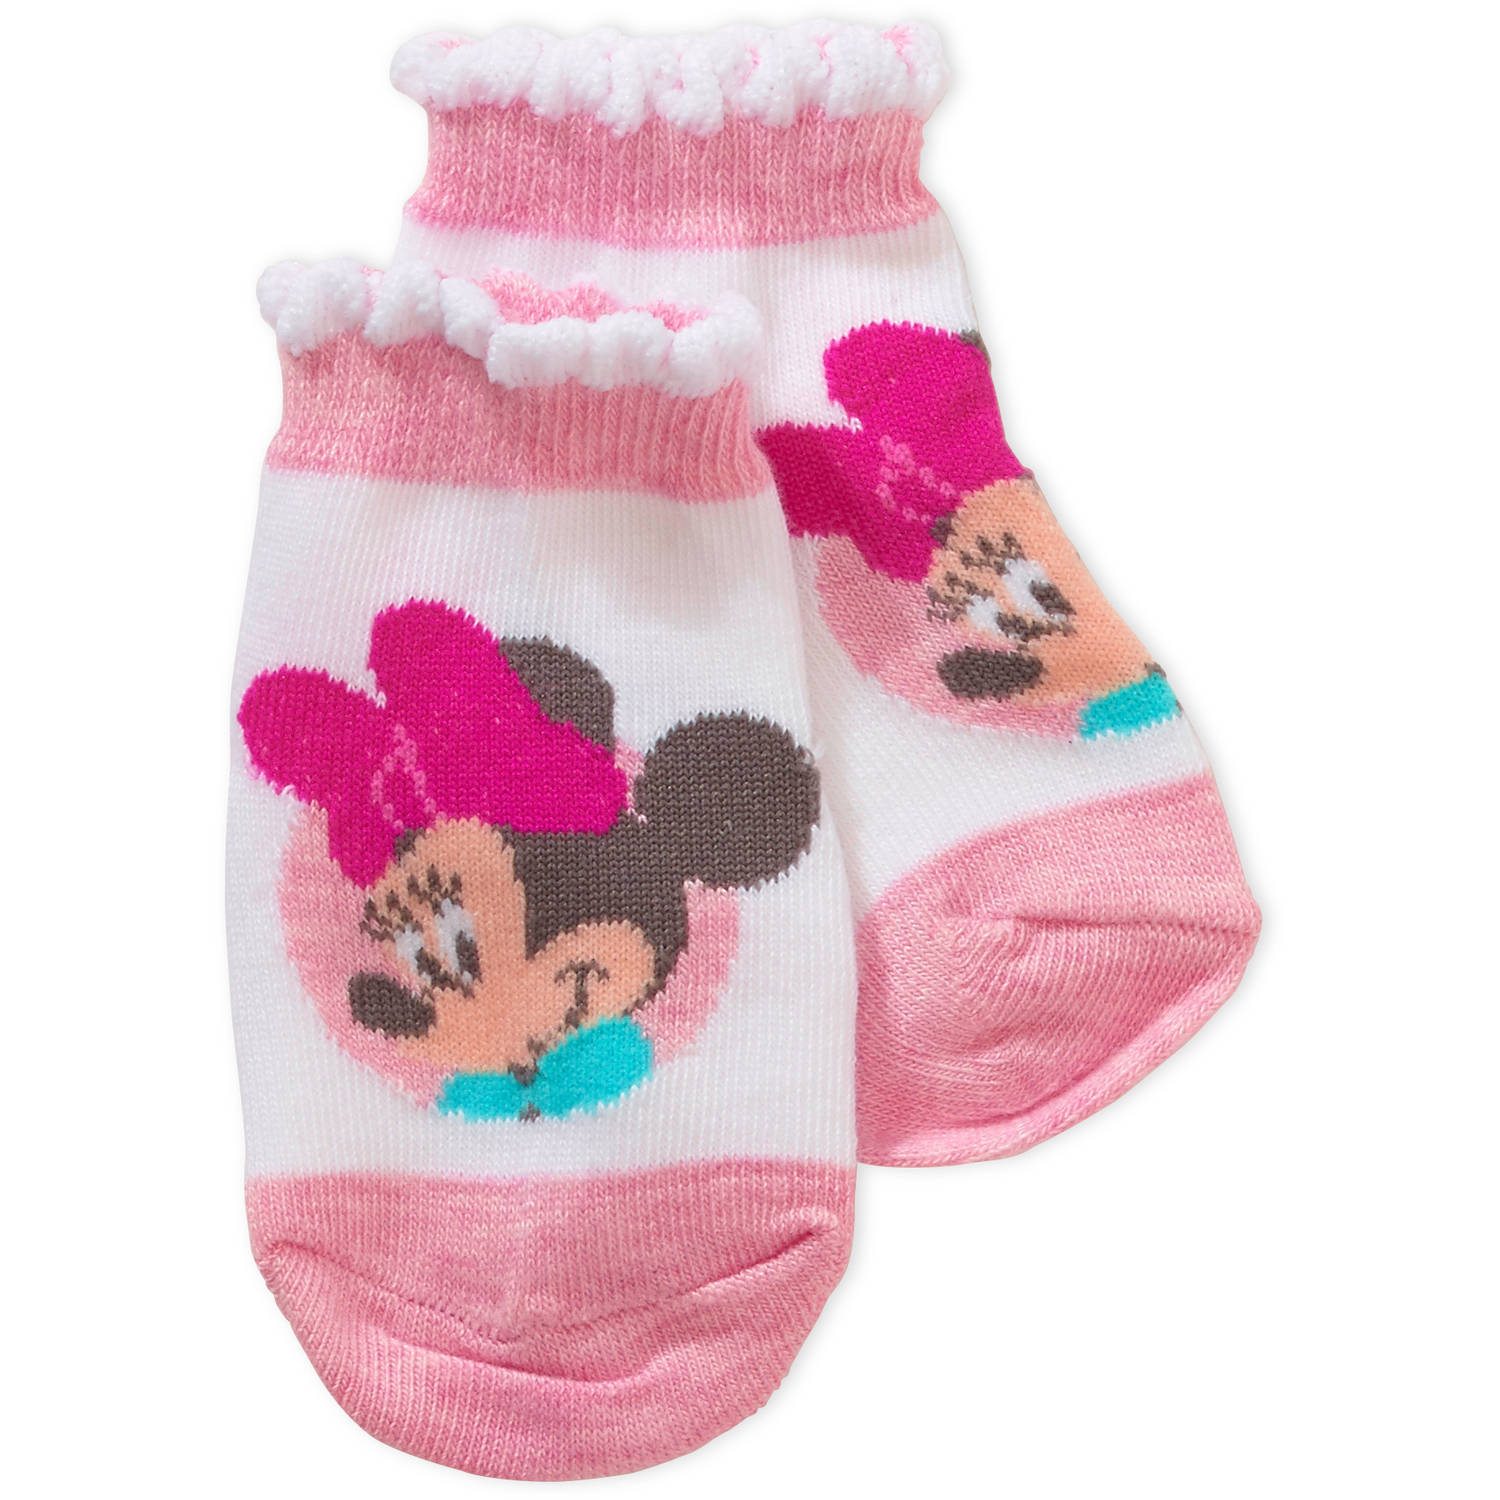 Minnie Mouse Newborn Baby Girl Quarter Socks, 3-Pack